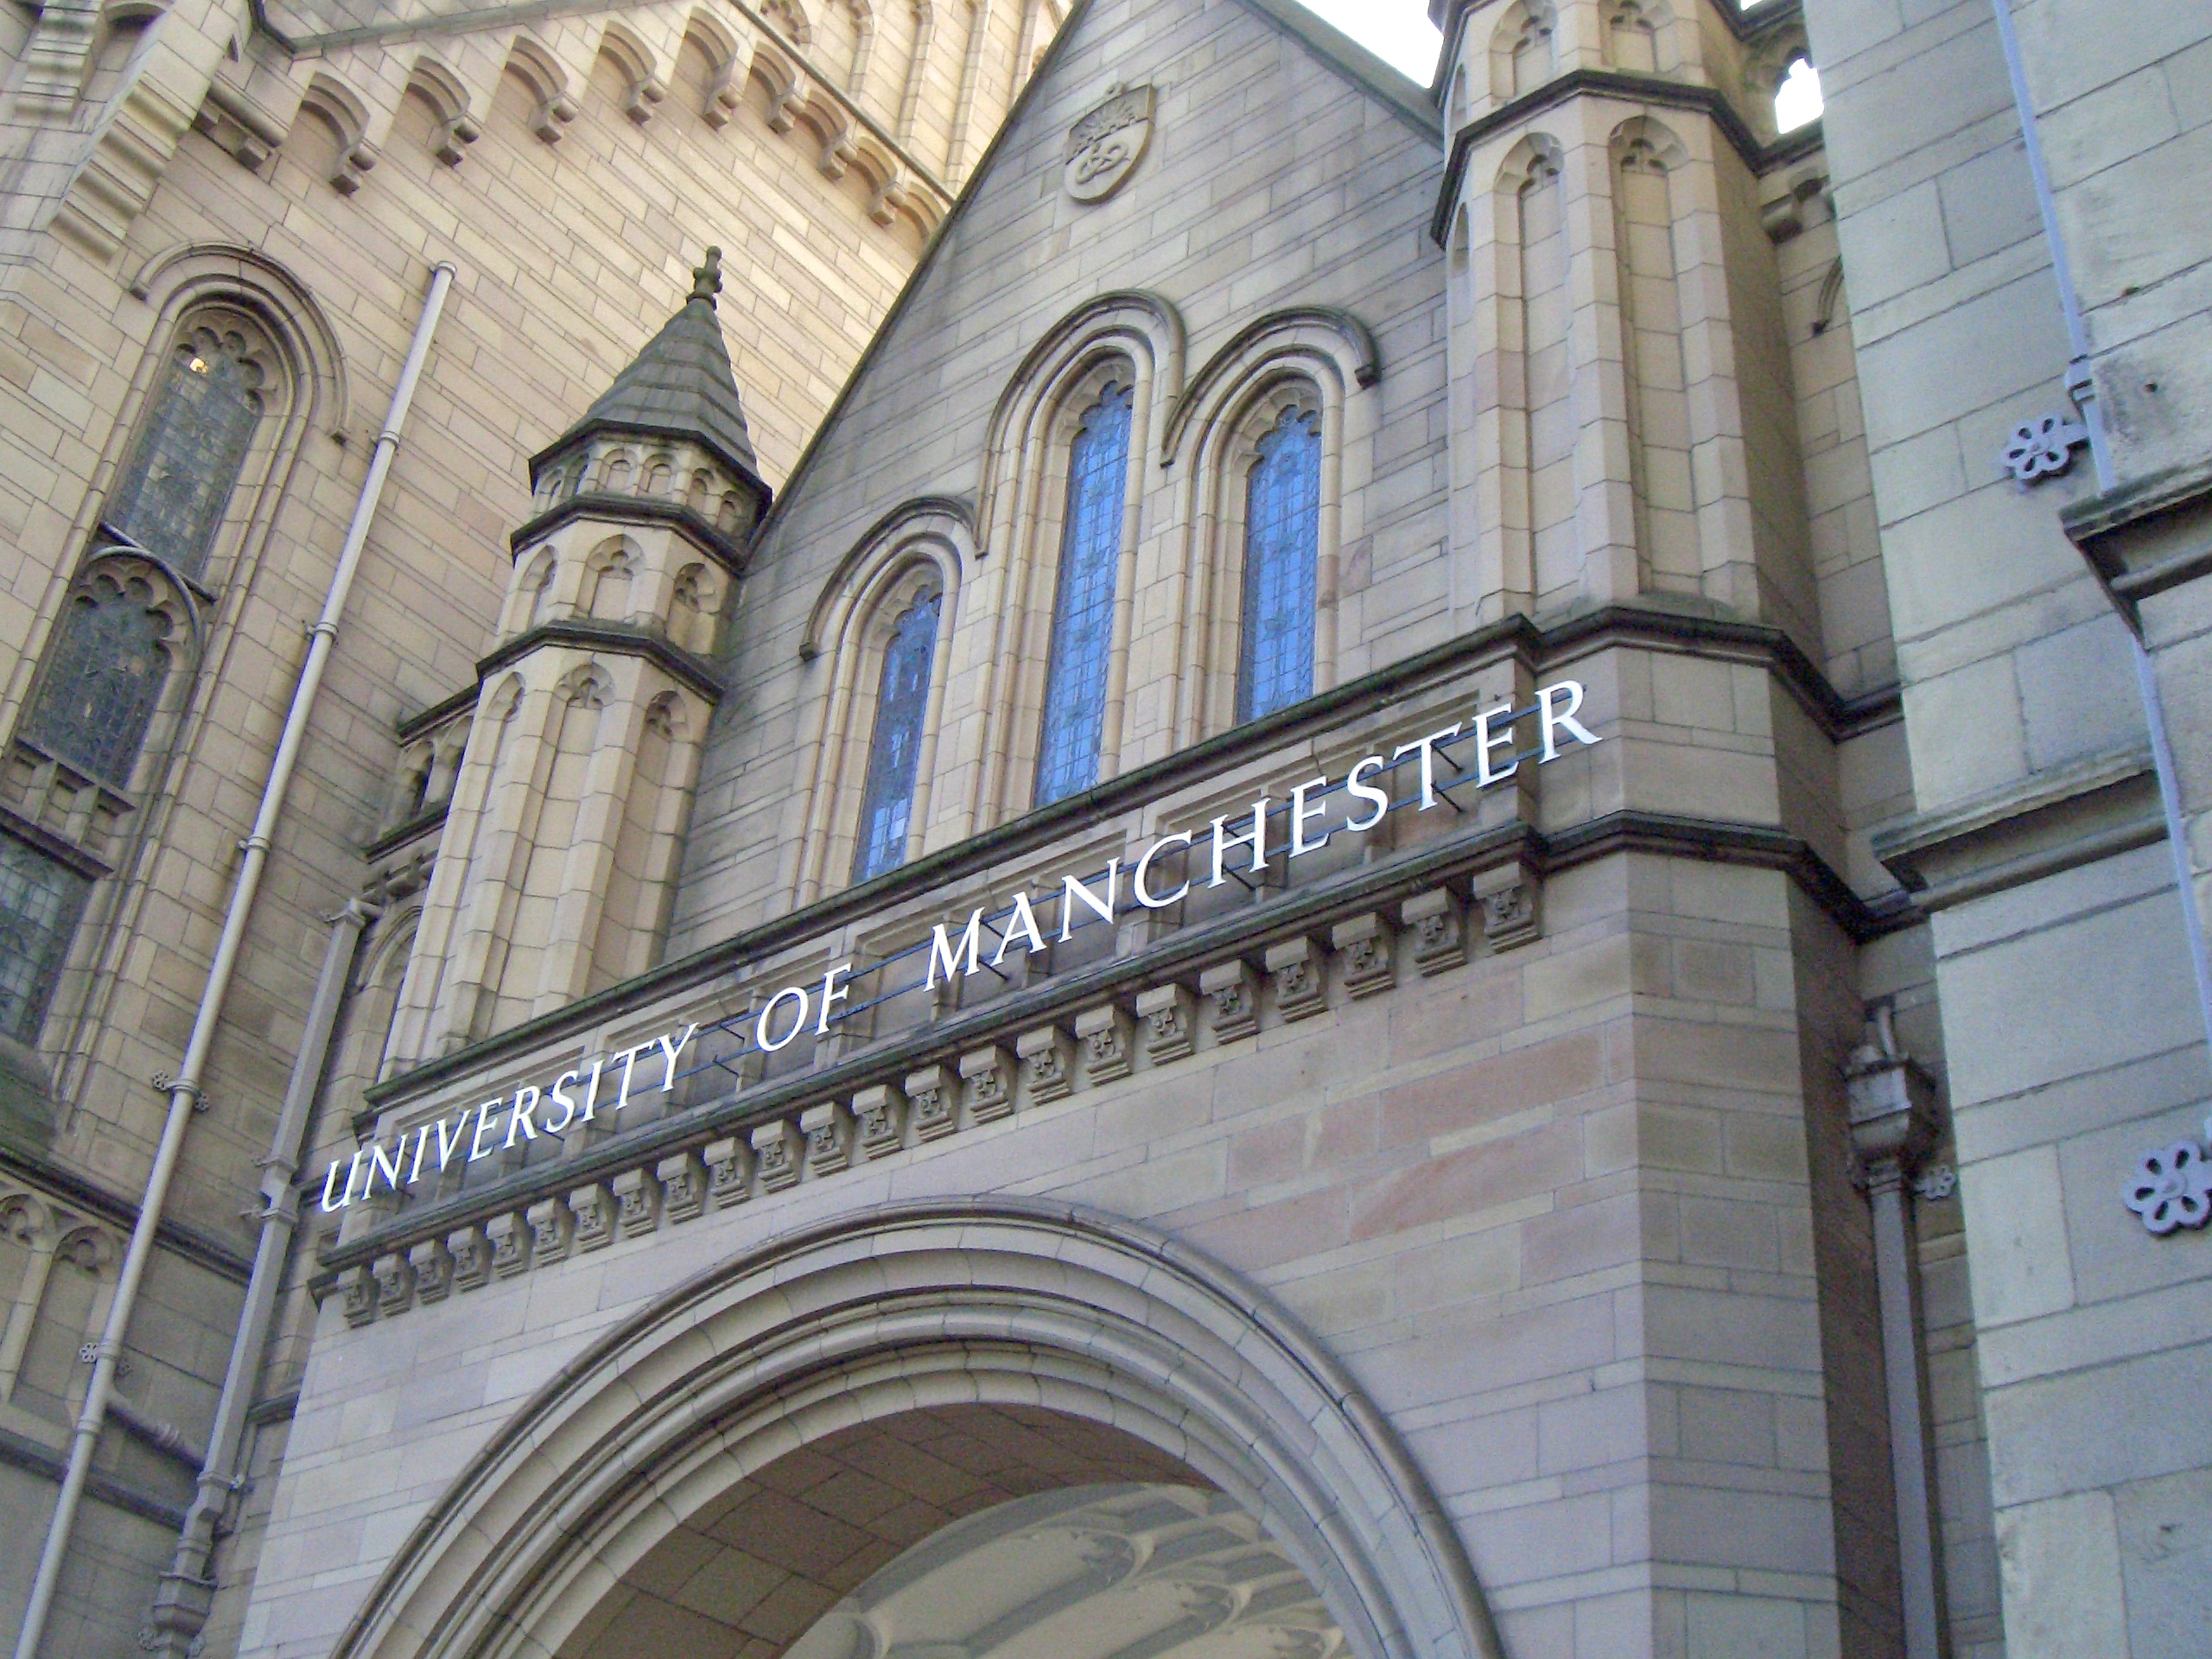 Image result for images for University of Manchester